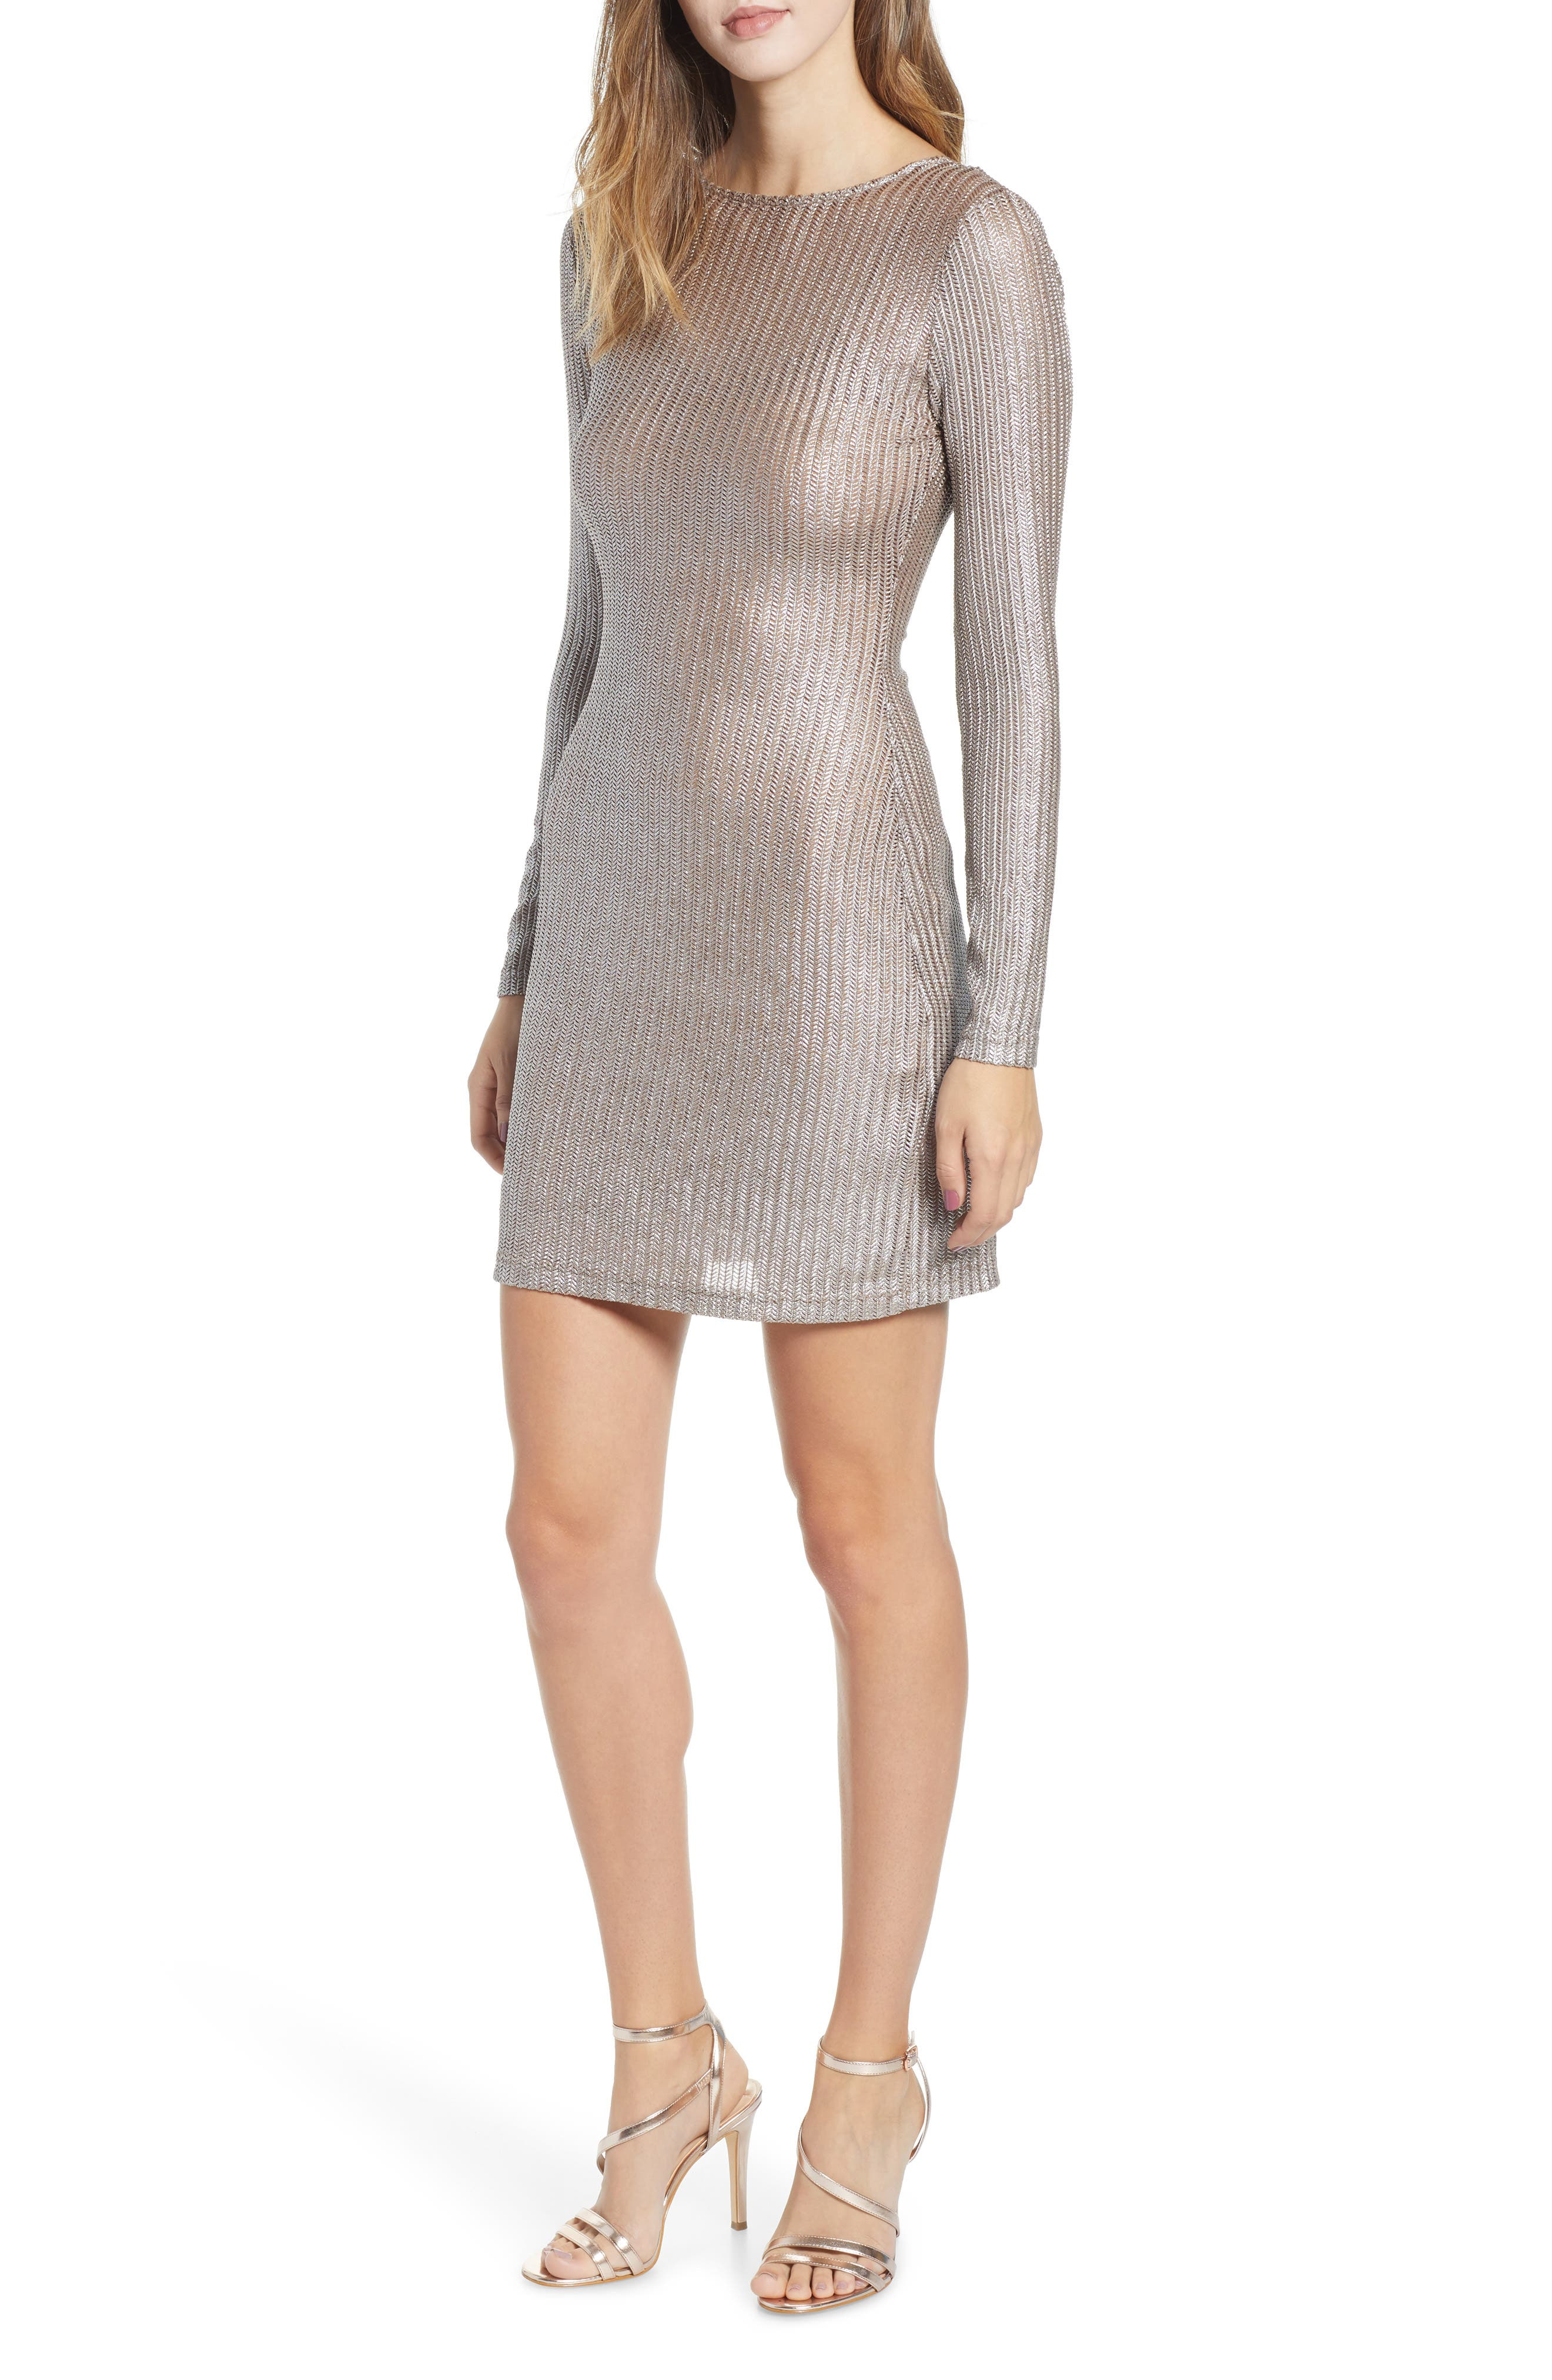 Wild Thoughts Metallic Dress,                             Main thumbnail 1, color,                             PEWTER